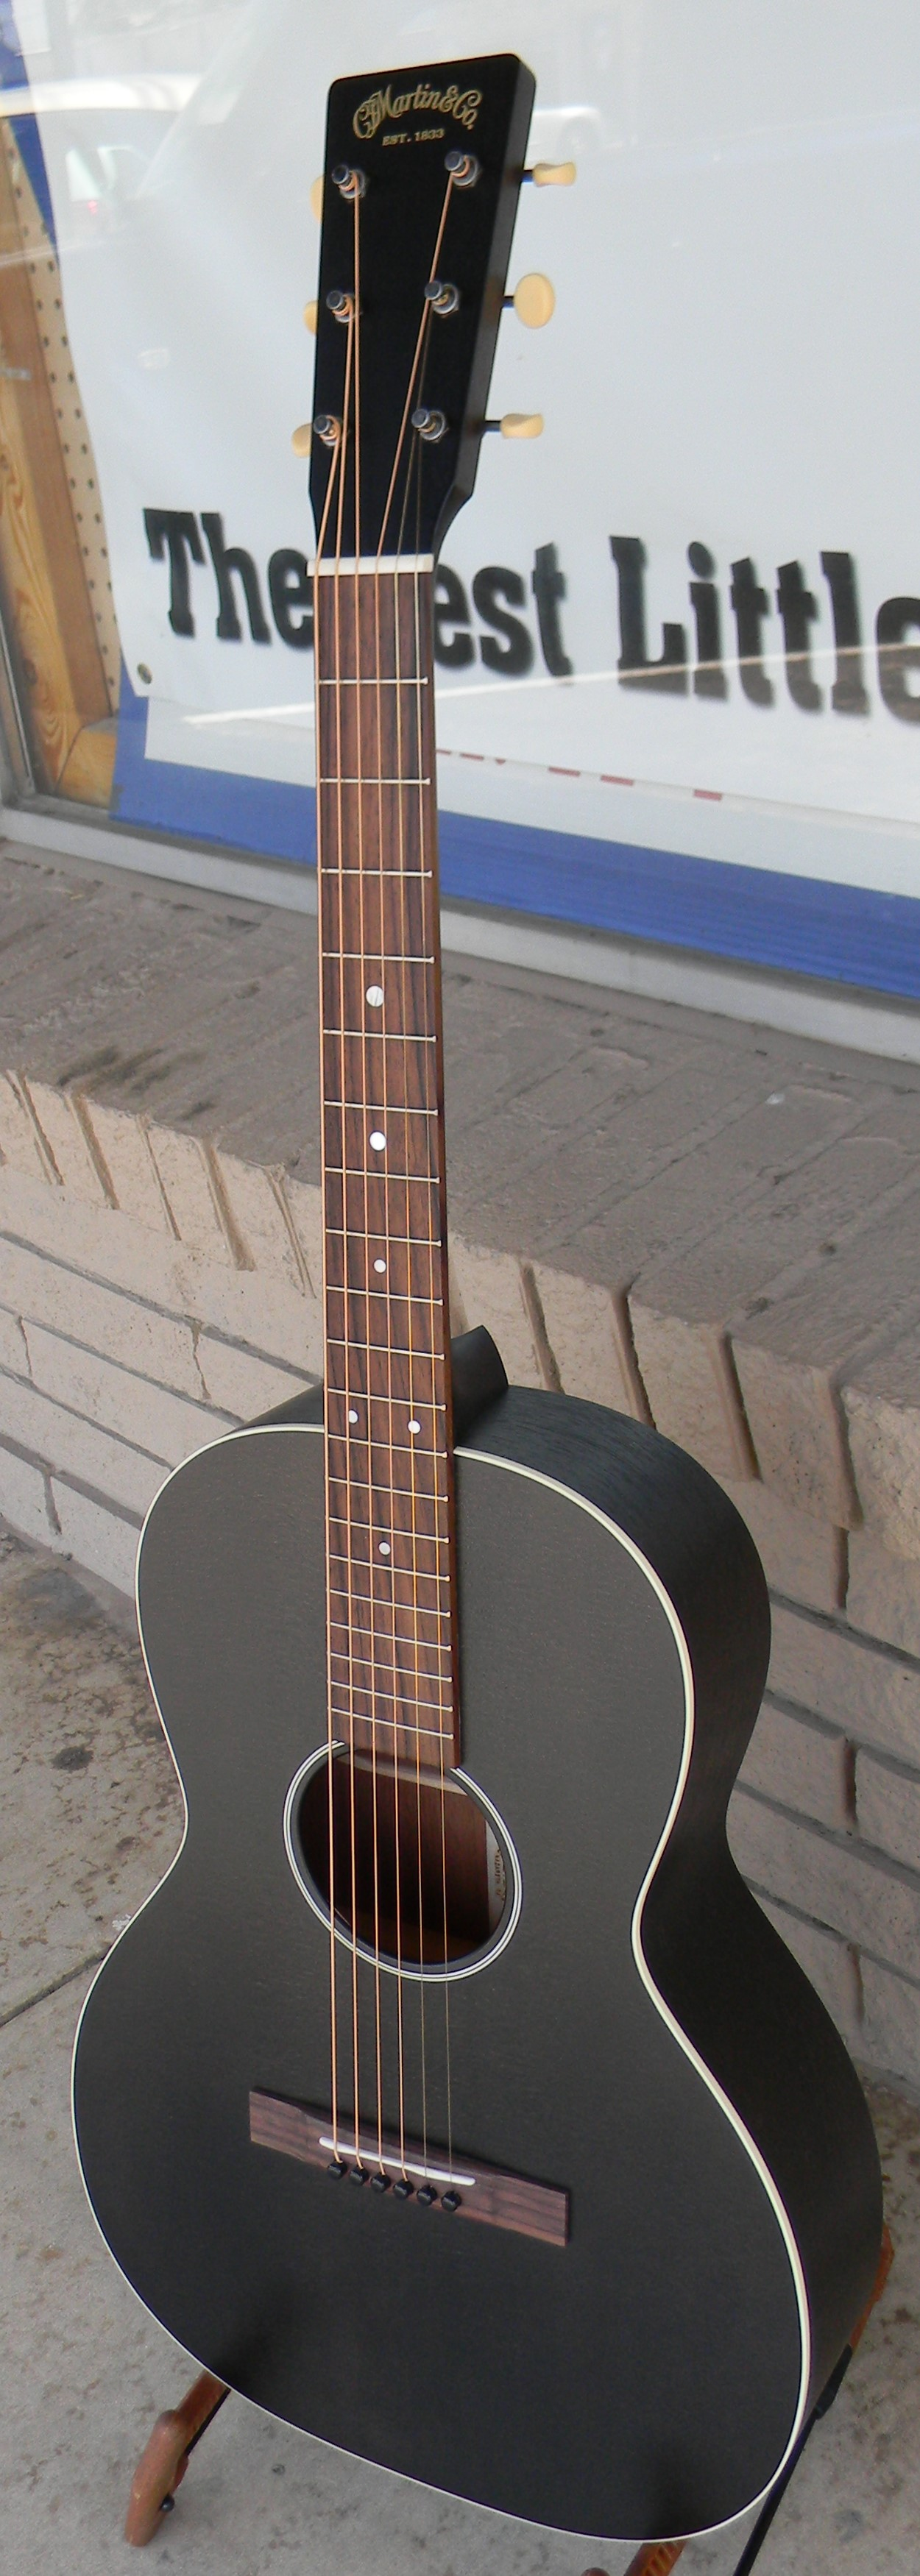 """Martin 00-17S Black Smoke. This one never fails to catch a person's eye. Auditorium sized 12 fret made of solid sitka spruce and mahogany with a translucent black finish that lets you see the wood grain. """"Open pore"""" treatment allows the woods to vibrate freely making for a robust and lively sounding guitar that is a joy to play. $1,859.00"""